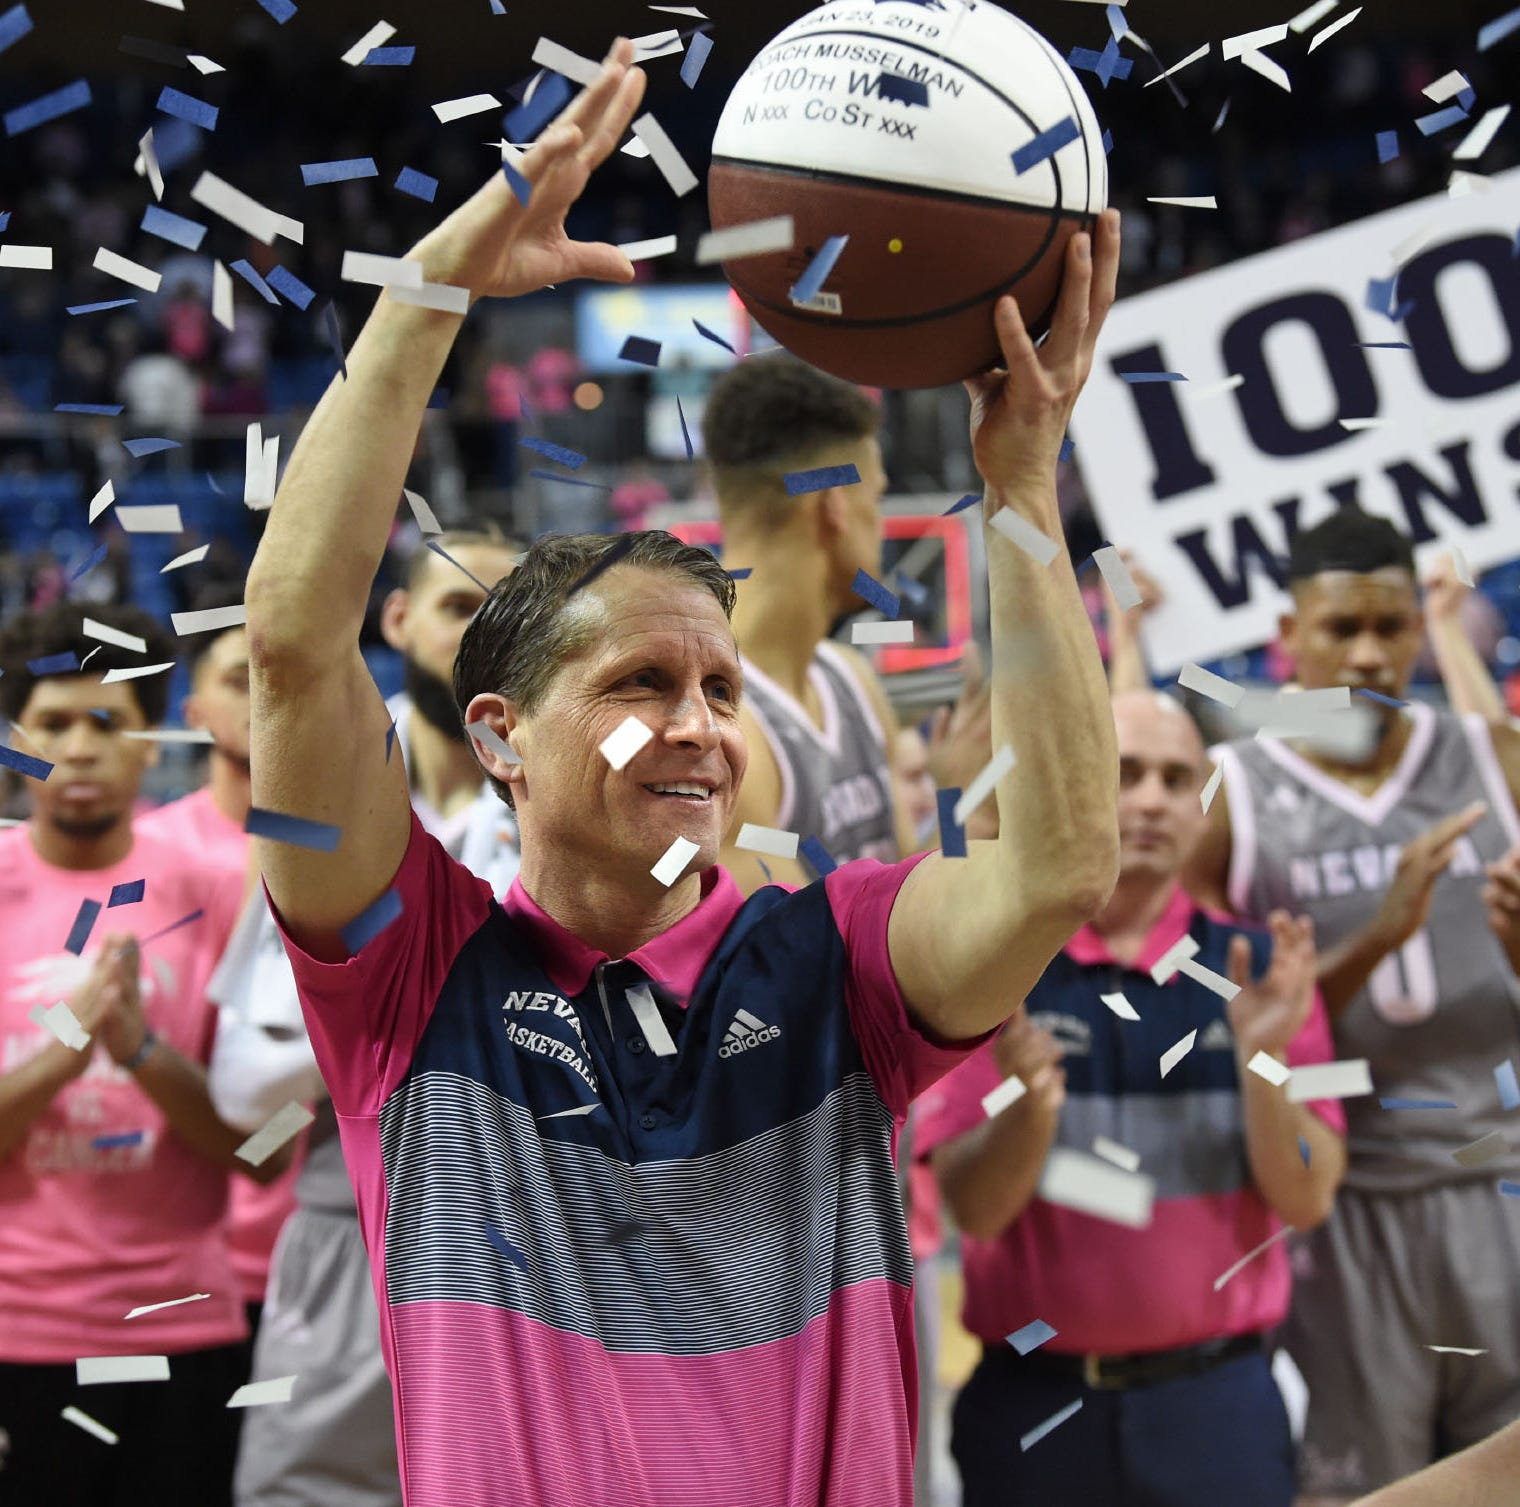 Eric Musselman is 'here in Reno with no plans to go anywhere,' says Danyelle Musselman